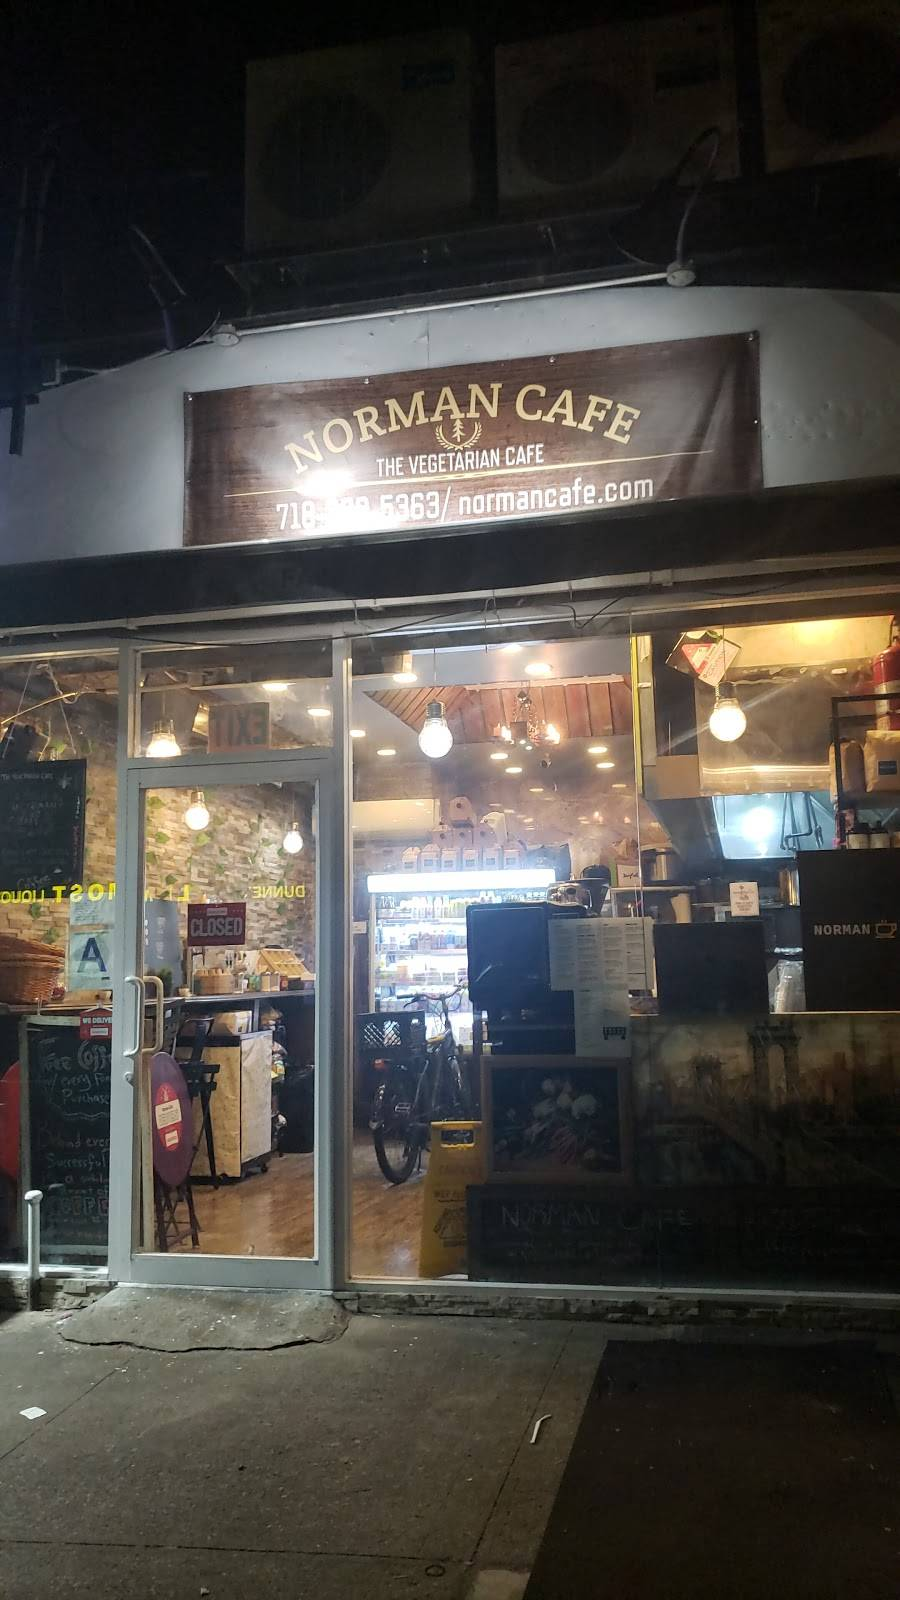 Norman Cafe | restaurant | 93 Norman Ave, Brooklyn, NY 11222, USA | 7183835363 OR +1 718-383-5363